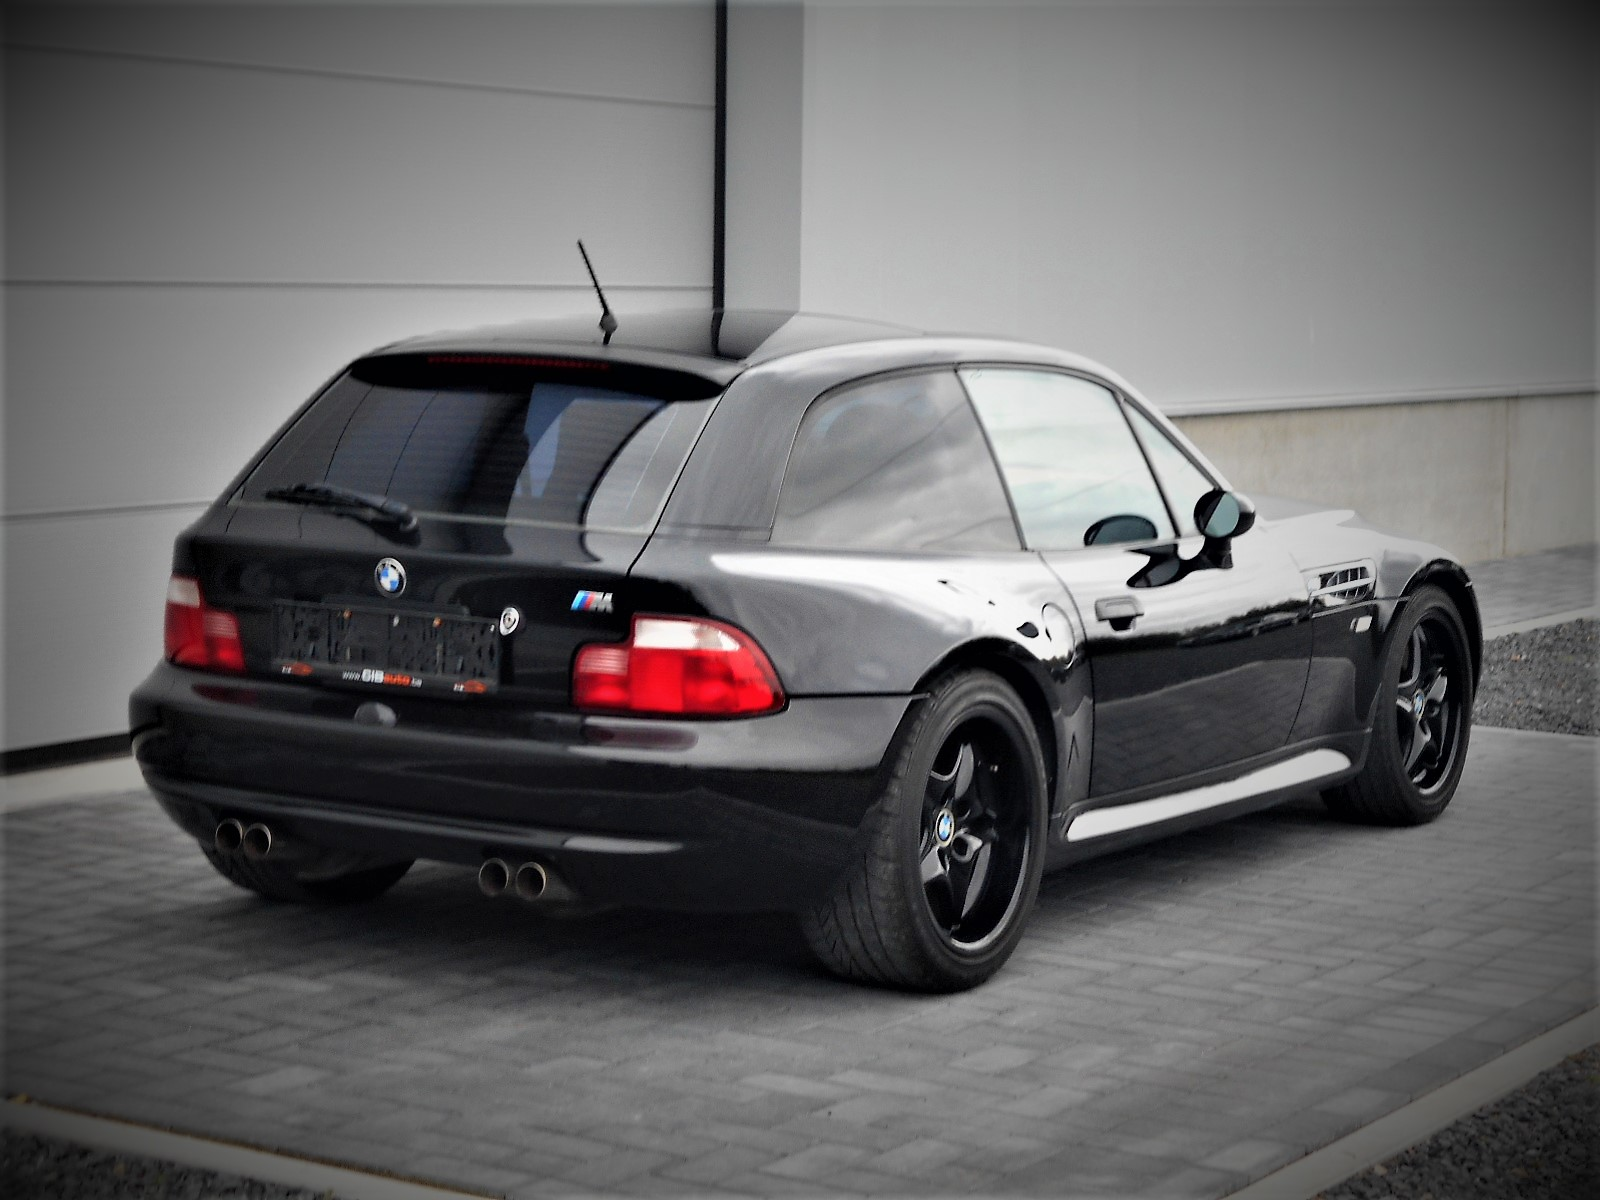 1999 BMW Z3 M coupé Black 62000 miles LHD | Left Hand Drive